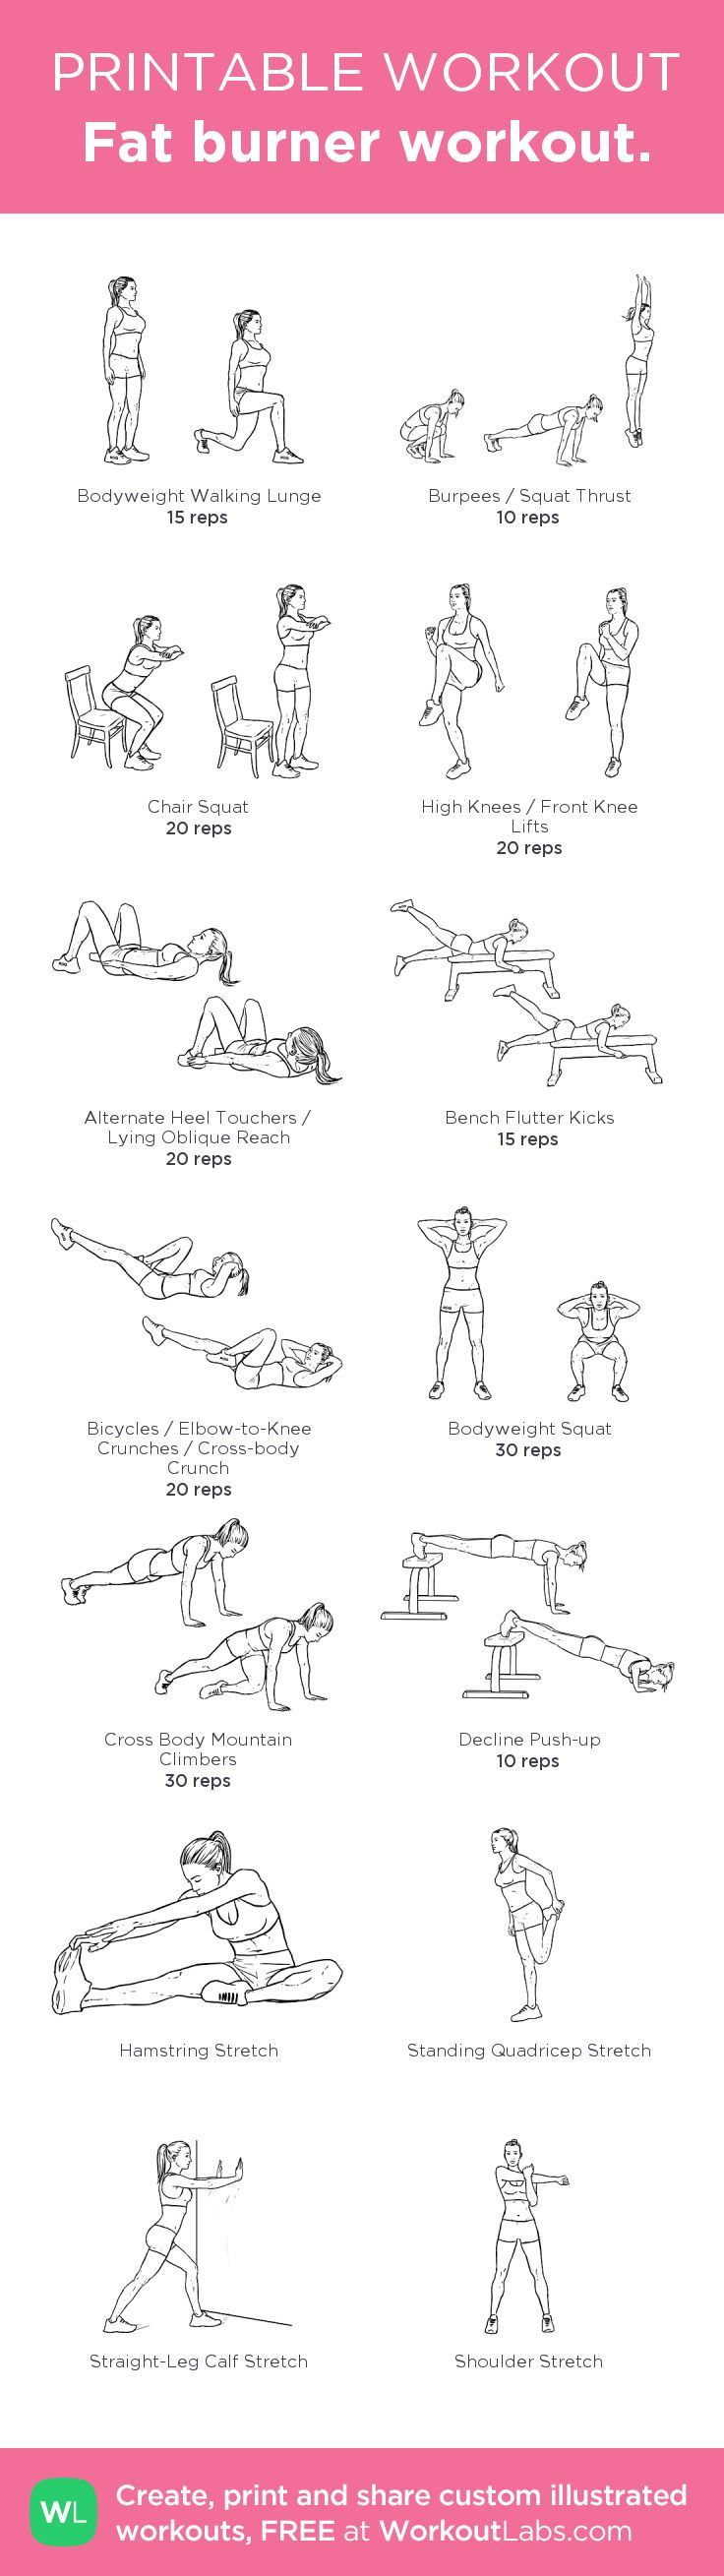 396 best Fitness Workouts & Inspiration images on Pinterest